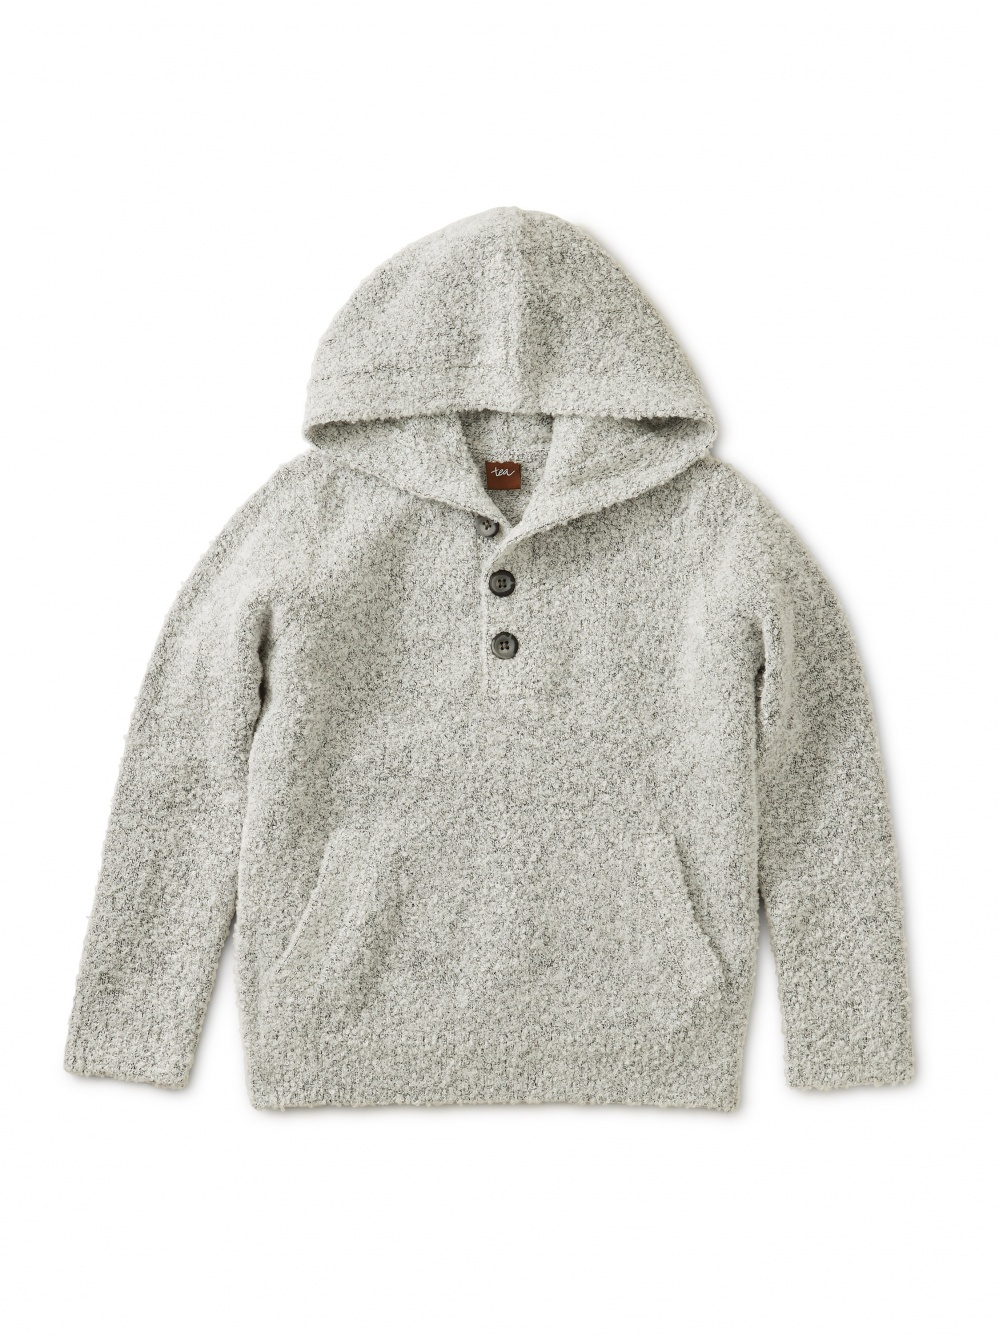 Bouclé Hooded Pullover Sweater